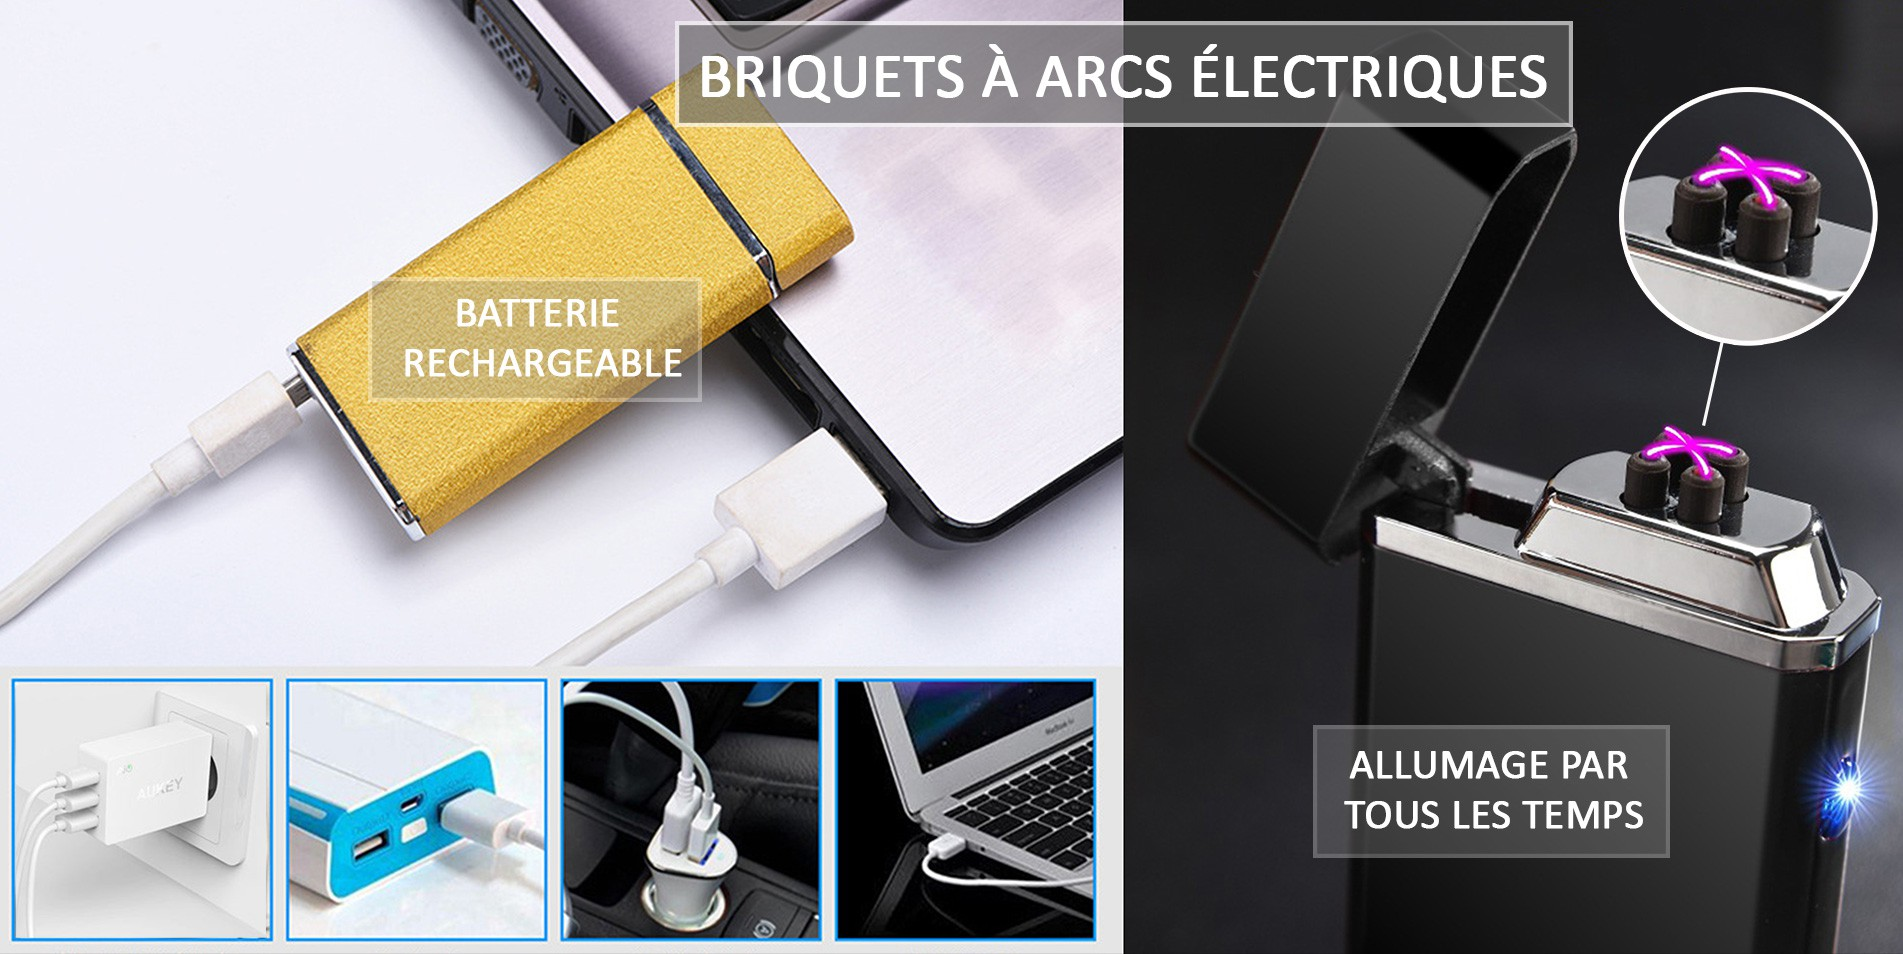 Arc electric lighters